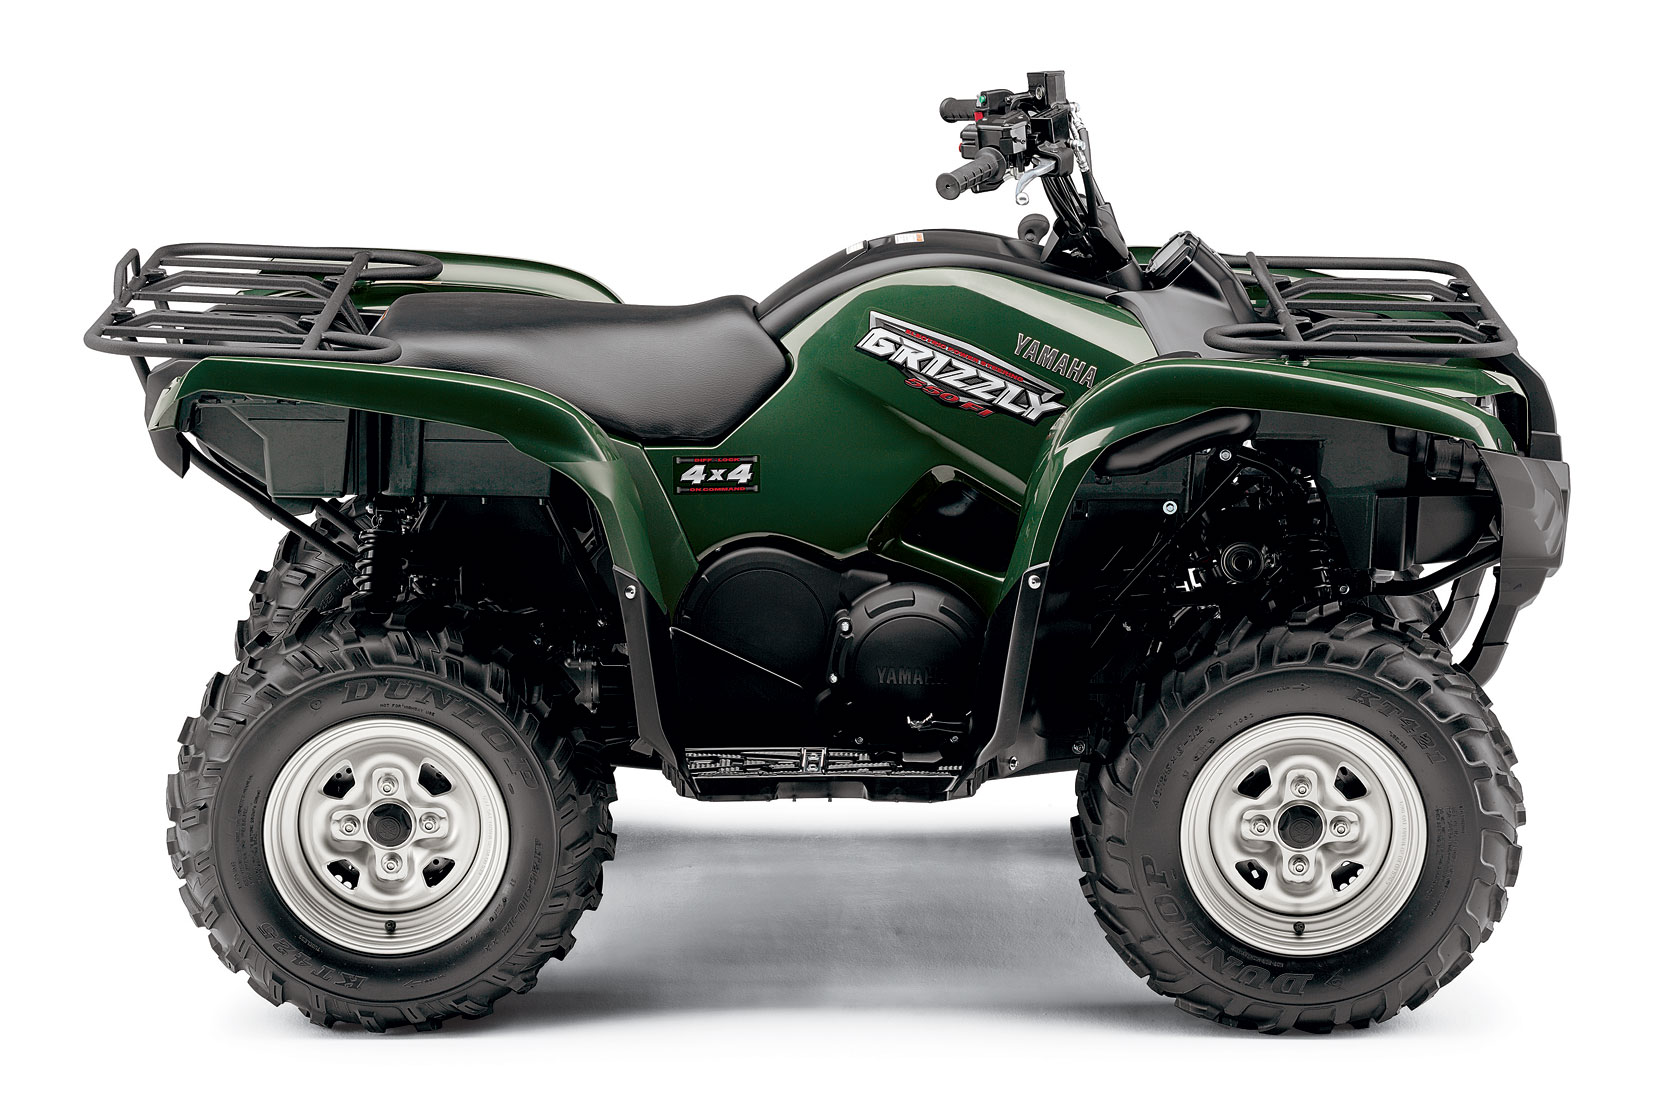 yamaha grizzly 550 fi eps specs 2008 2009 autoevolution. Black Bedroom Furniture Sets. Home Design Ideas